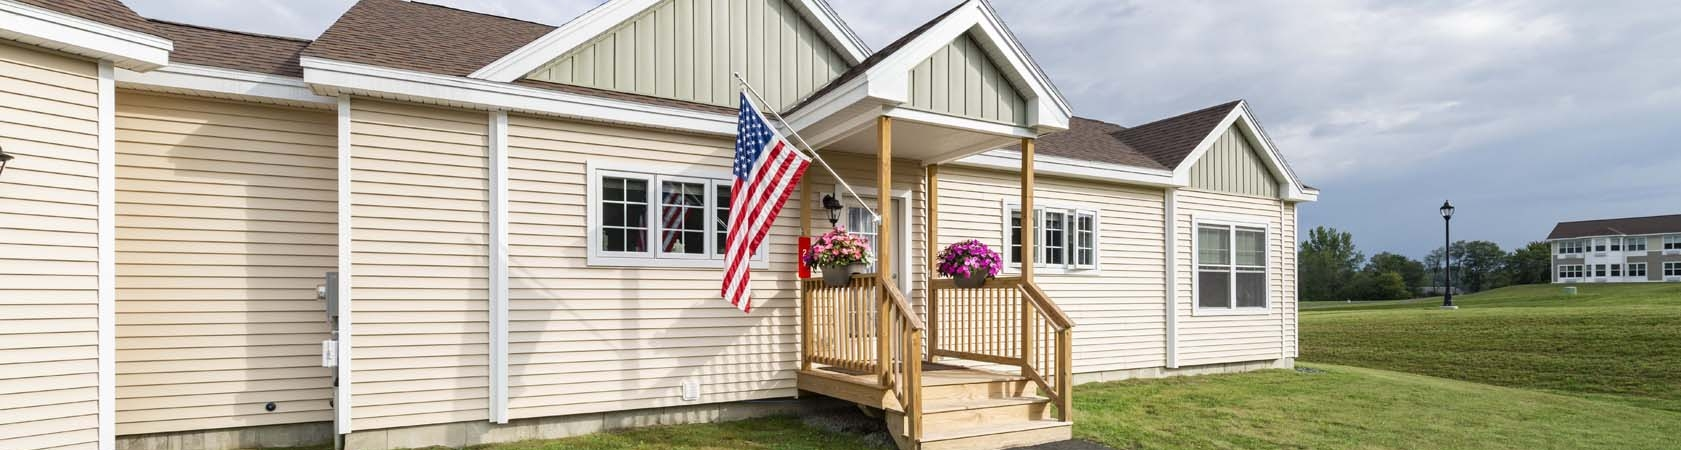 Exterior view of an independent living cottage